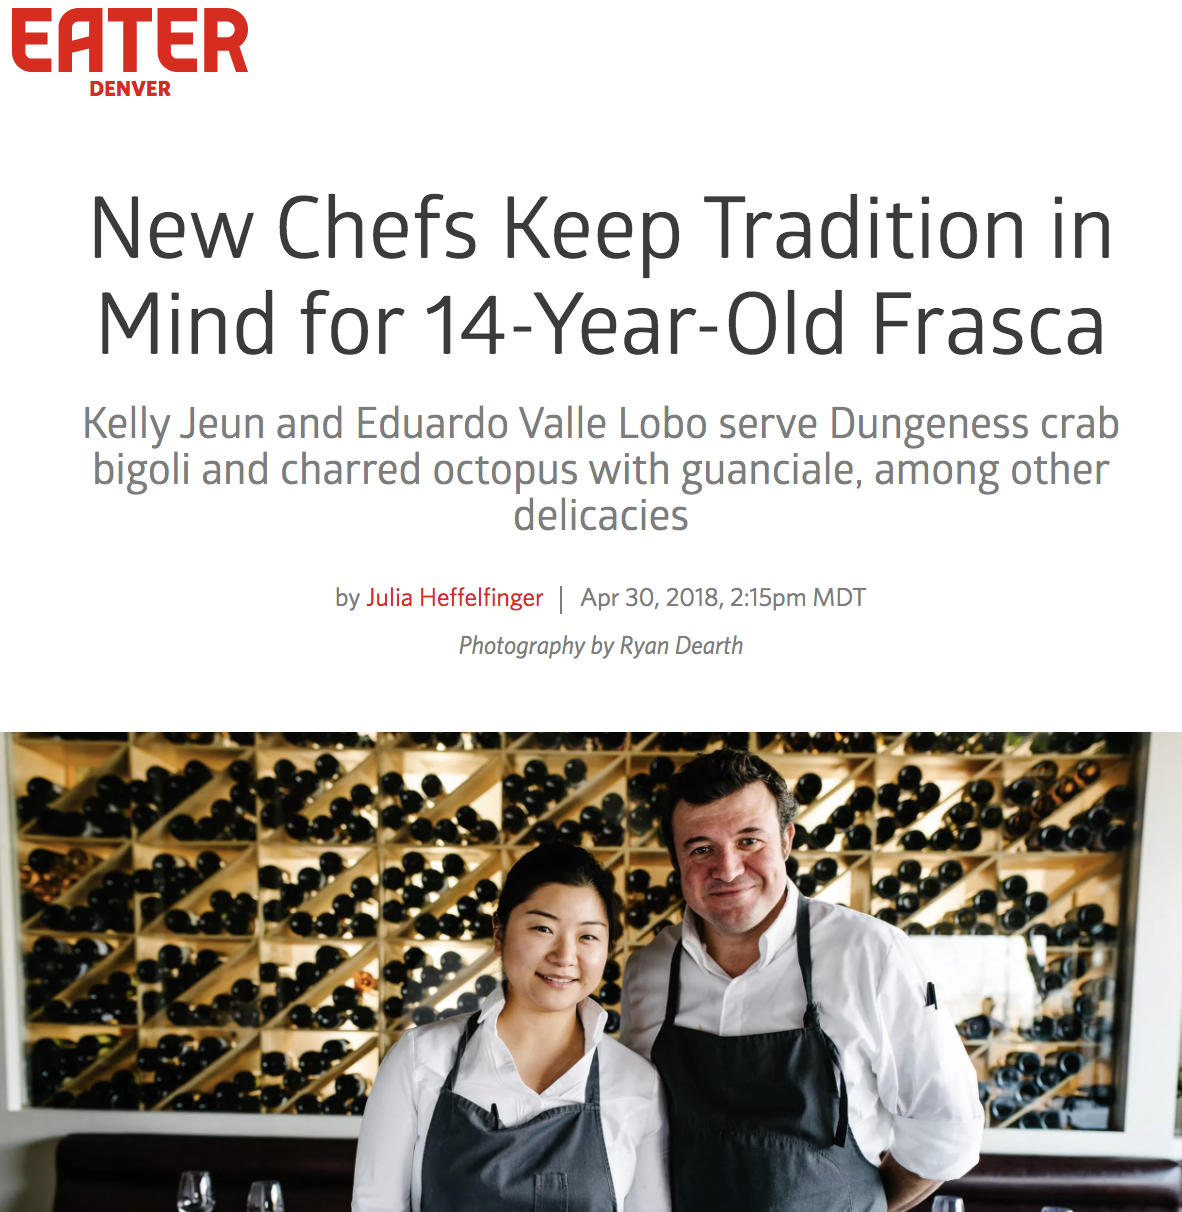 EATER DENVER  New Chefs Keep Traditional in Mind for 14-Year-Old Frasca, April 2018